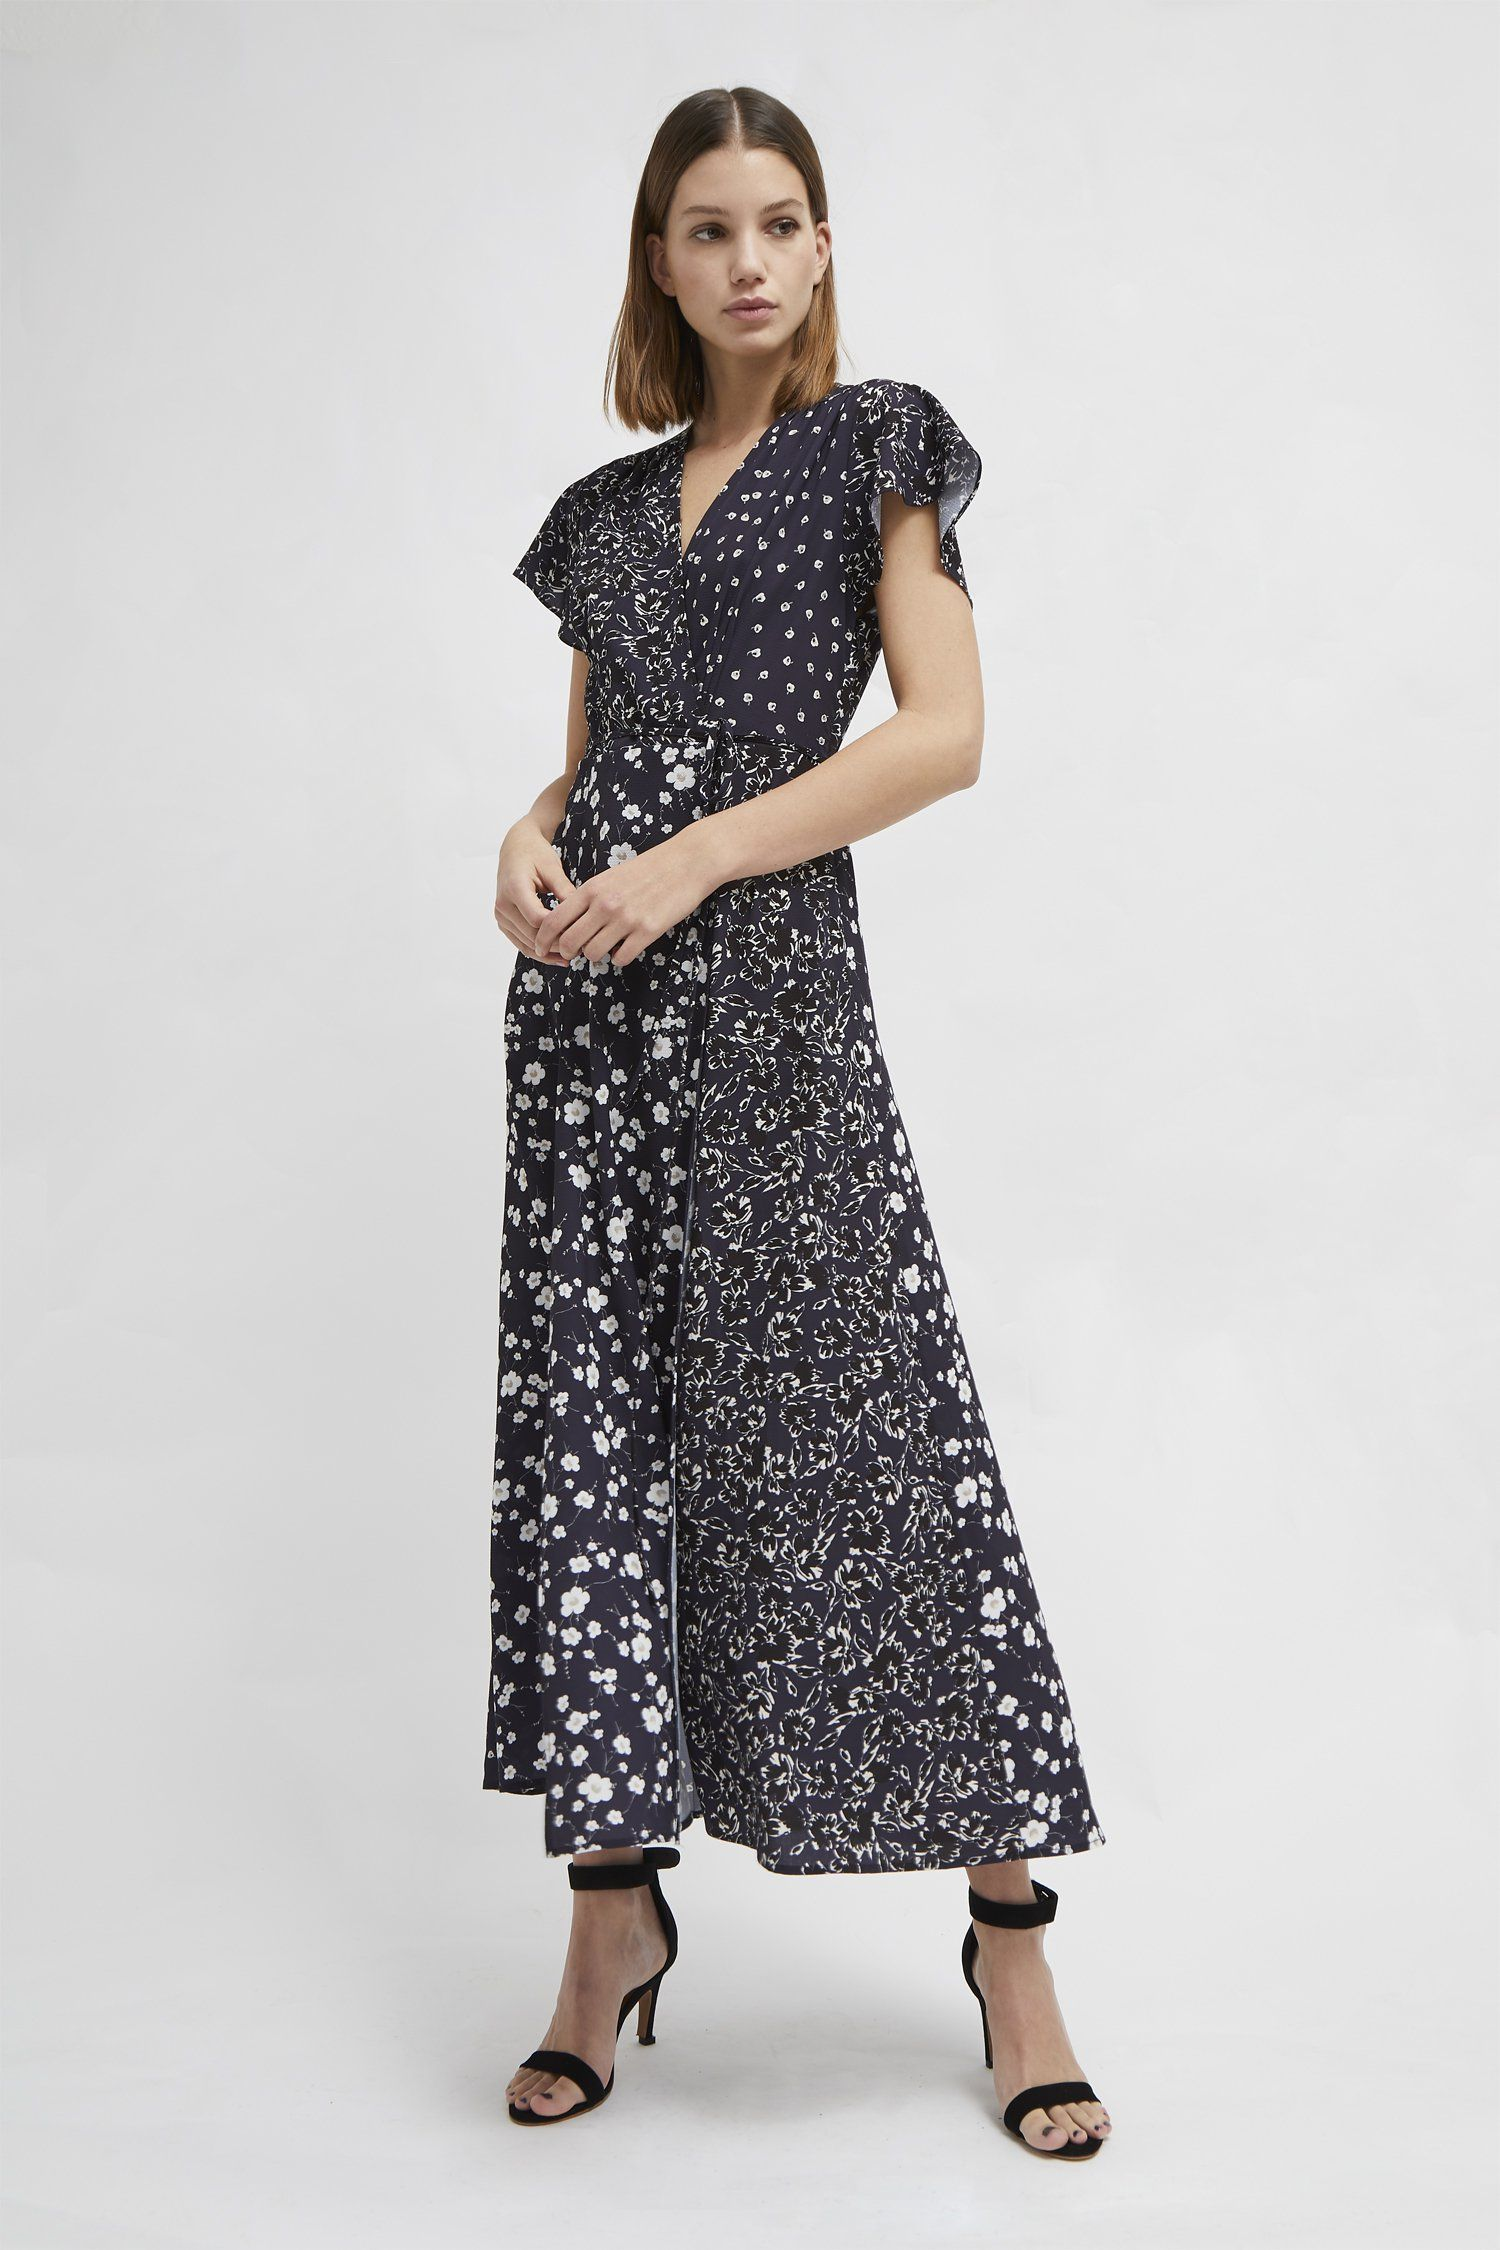 fbc693806bacc Mixed floral wrap front maxi dress Fabric: light, soft, smooth, slight  stretch